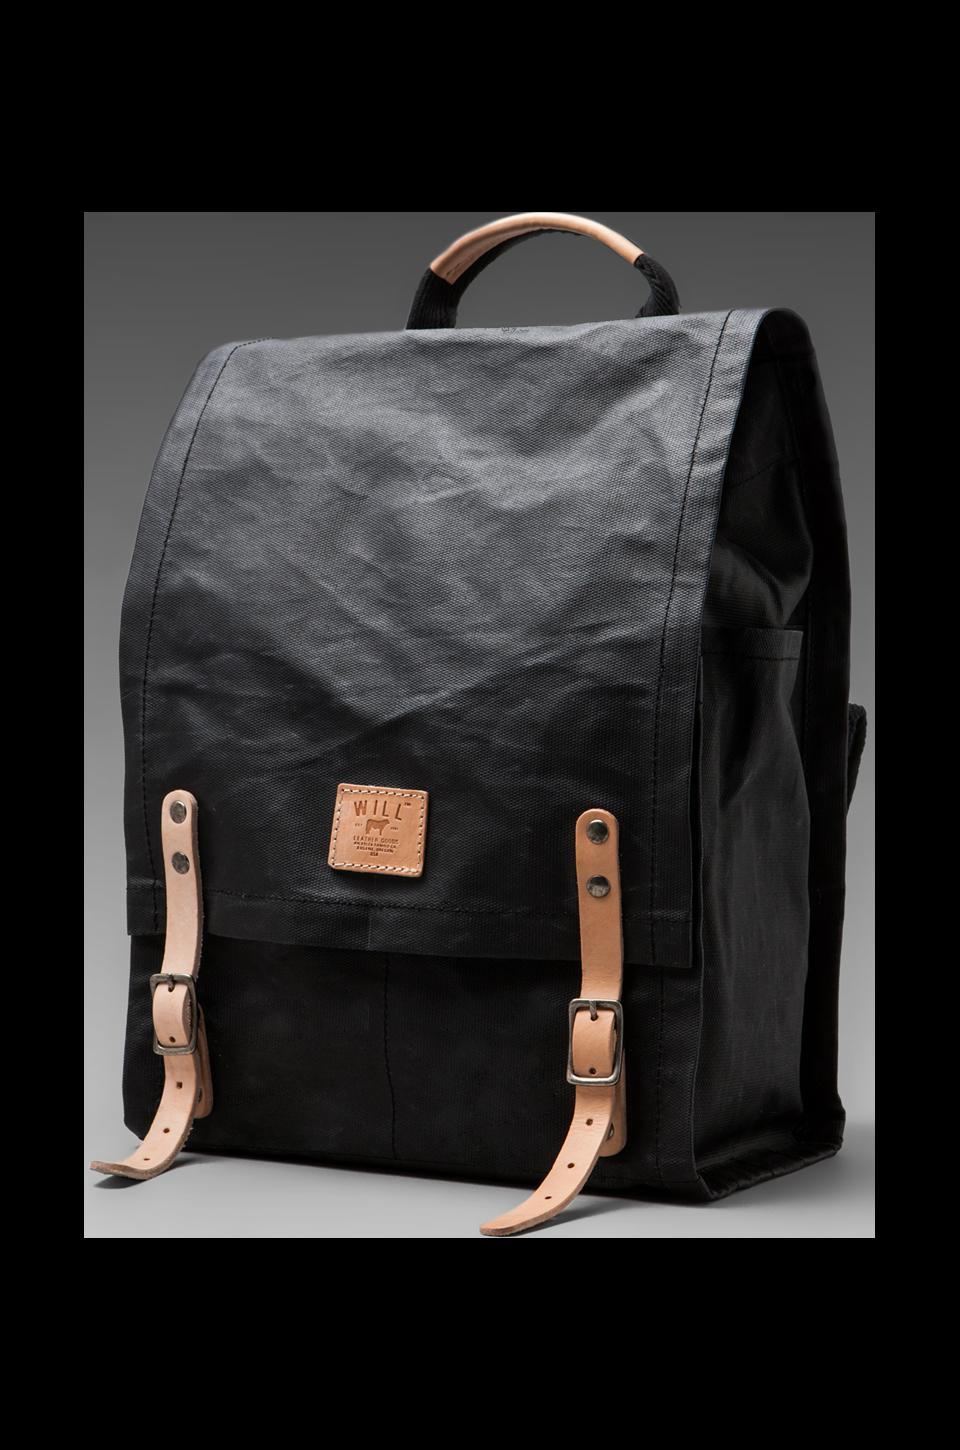 WILL Leather Goods Wax Coated Canvas Backpack in Black